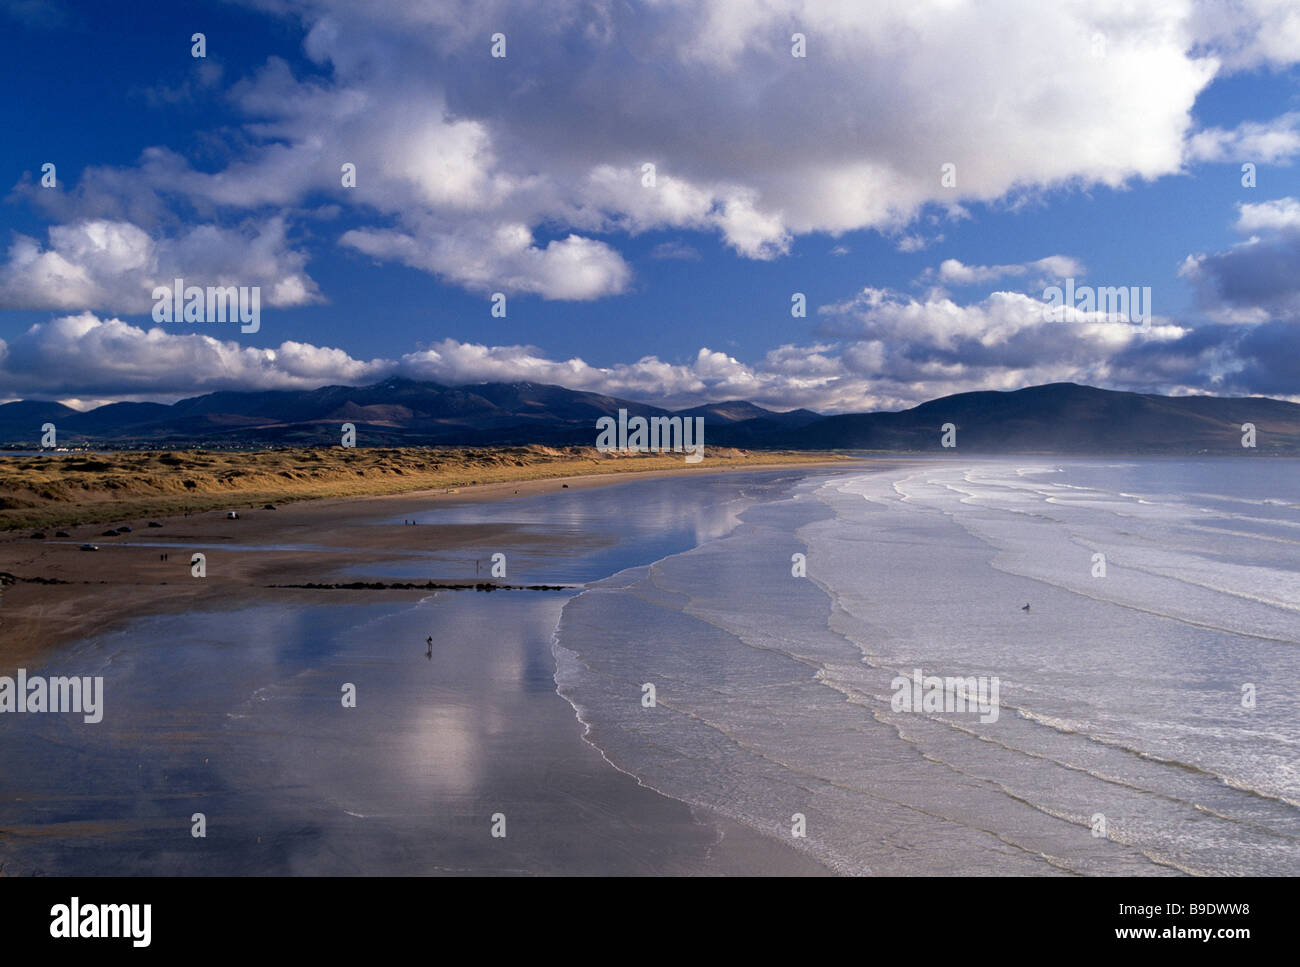 ireland, county kerry, dingle peninsula, inch beach, atlantic west coast. beauty in nature, wild atlantic way, - Stock Image